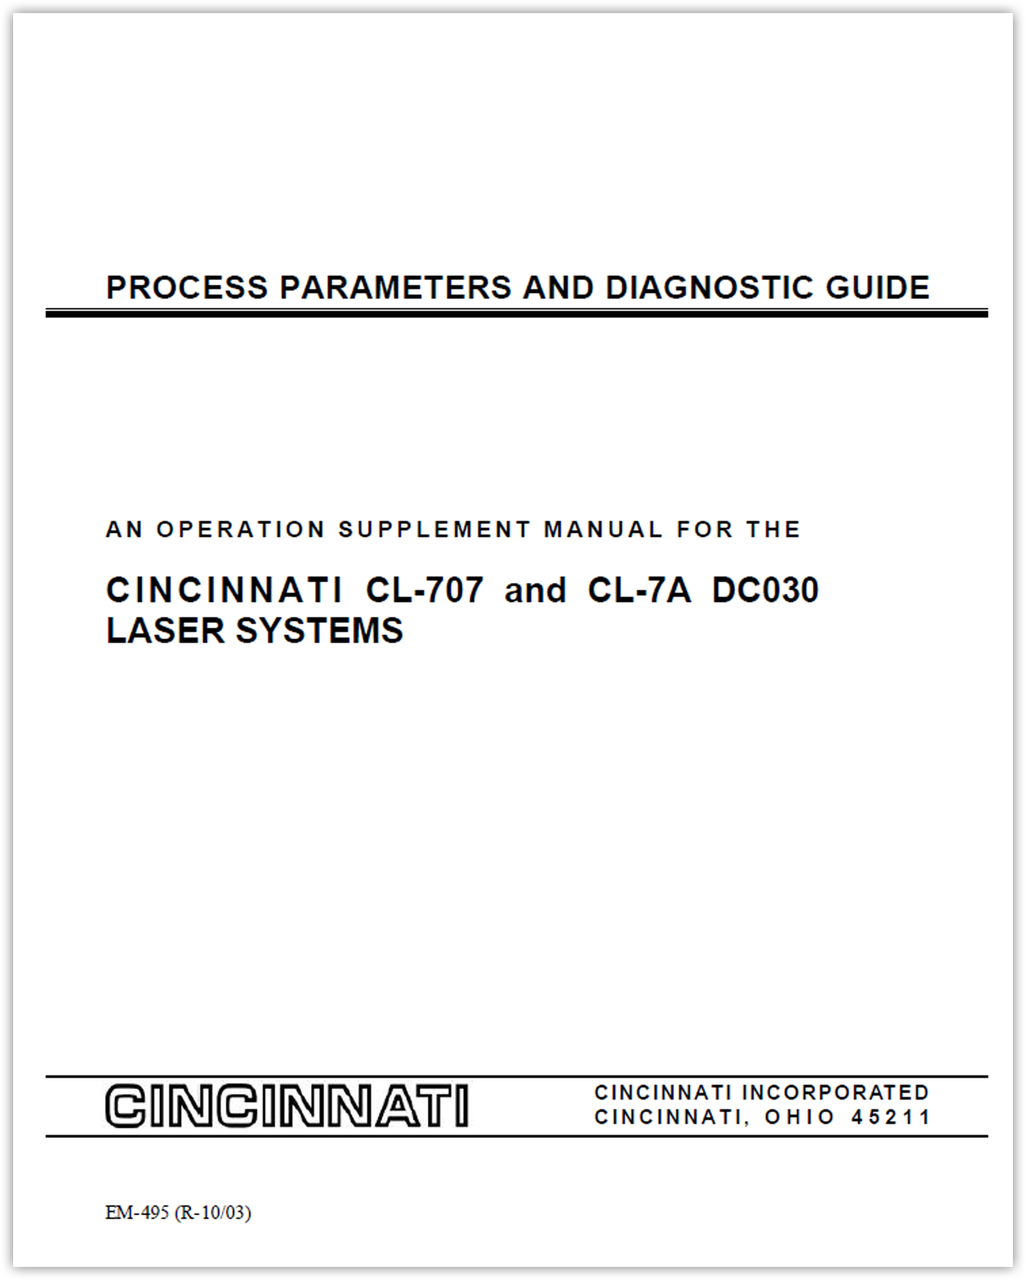 EM-495 (R-10-03) Process Parameters and Diagnostic Guide - An Operation Supplement Manual for the CINCINNATI CL-707 and CL-7A DC030 Laser Systems